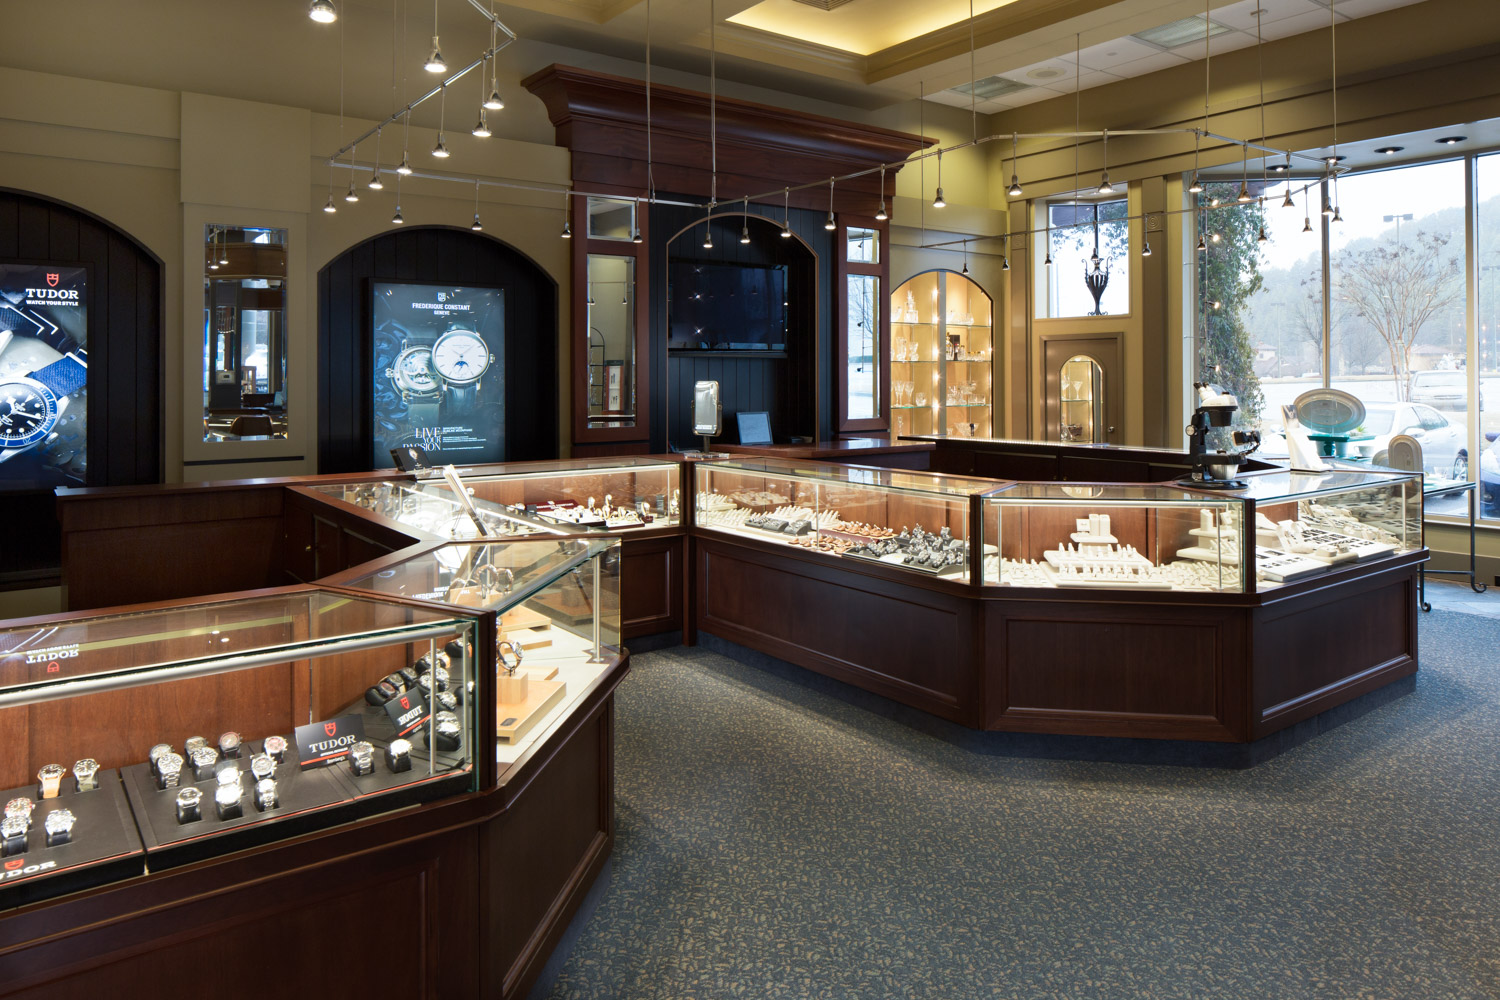 Brombergs - Birmingham AL Jewelry Store - Google Virtual Tour2519.jpg